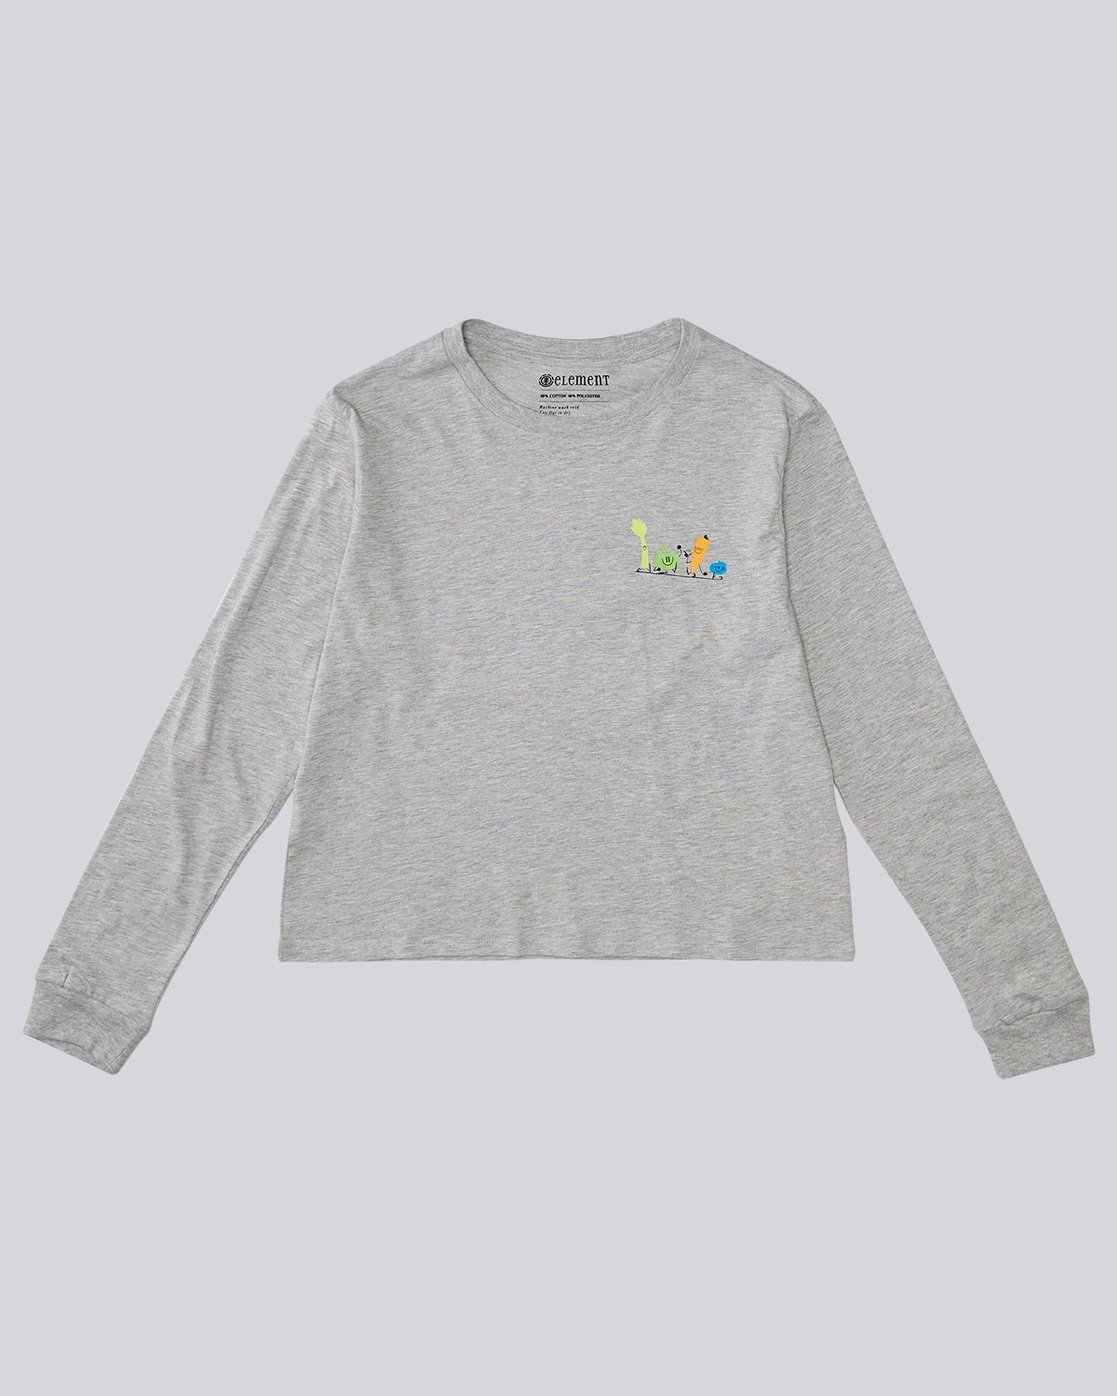 0 Yawyd Crop Ls - Tee Shirt for Women Grey N3LSA7ELP9 Element